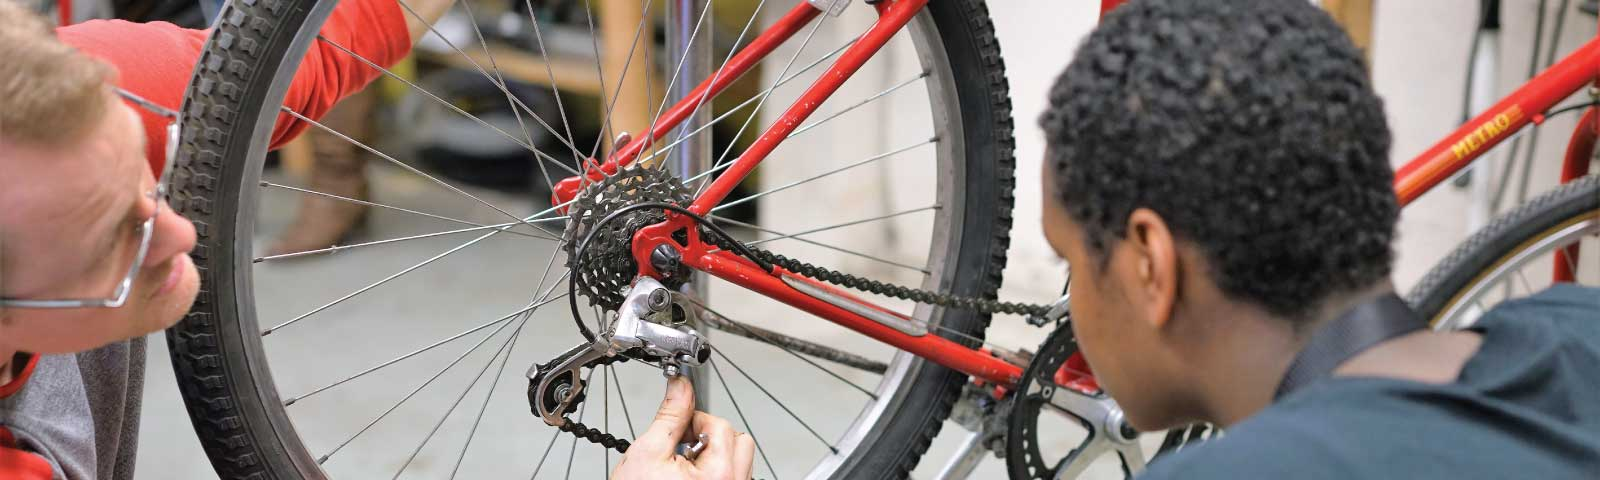 Job Skills Training teach bike repair to young adults